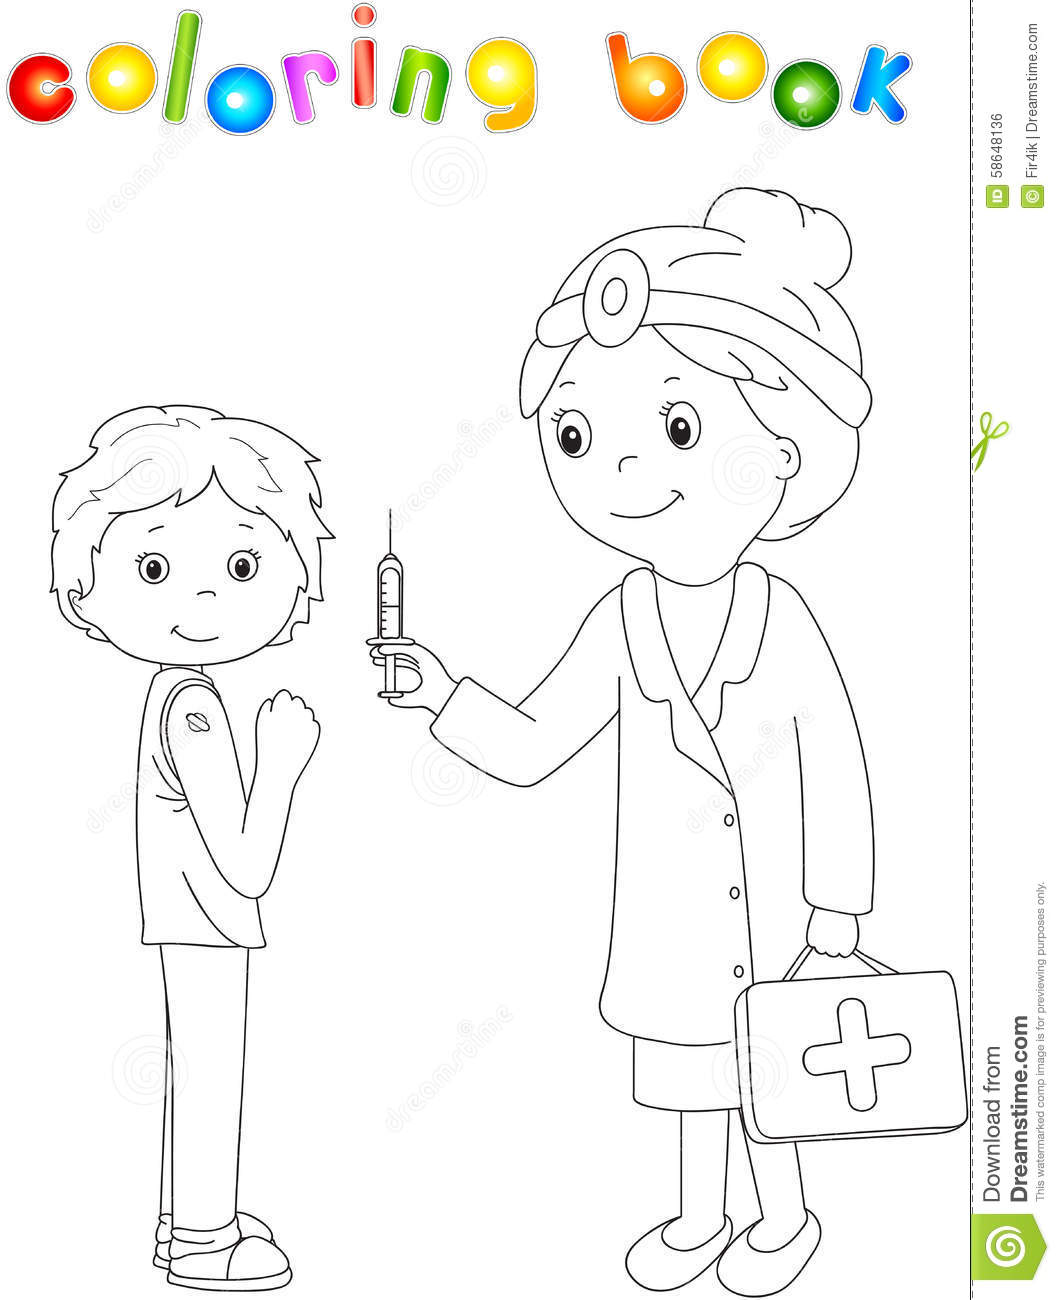 Injection coloring pages